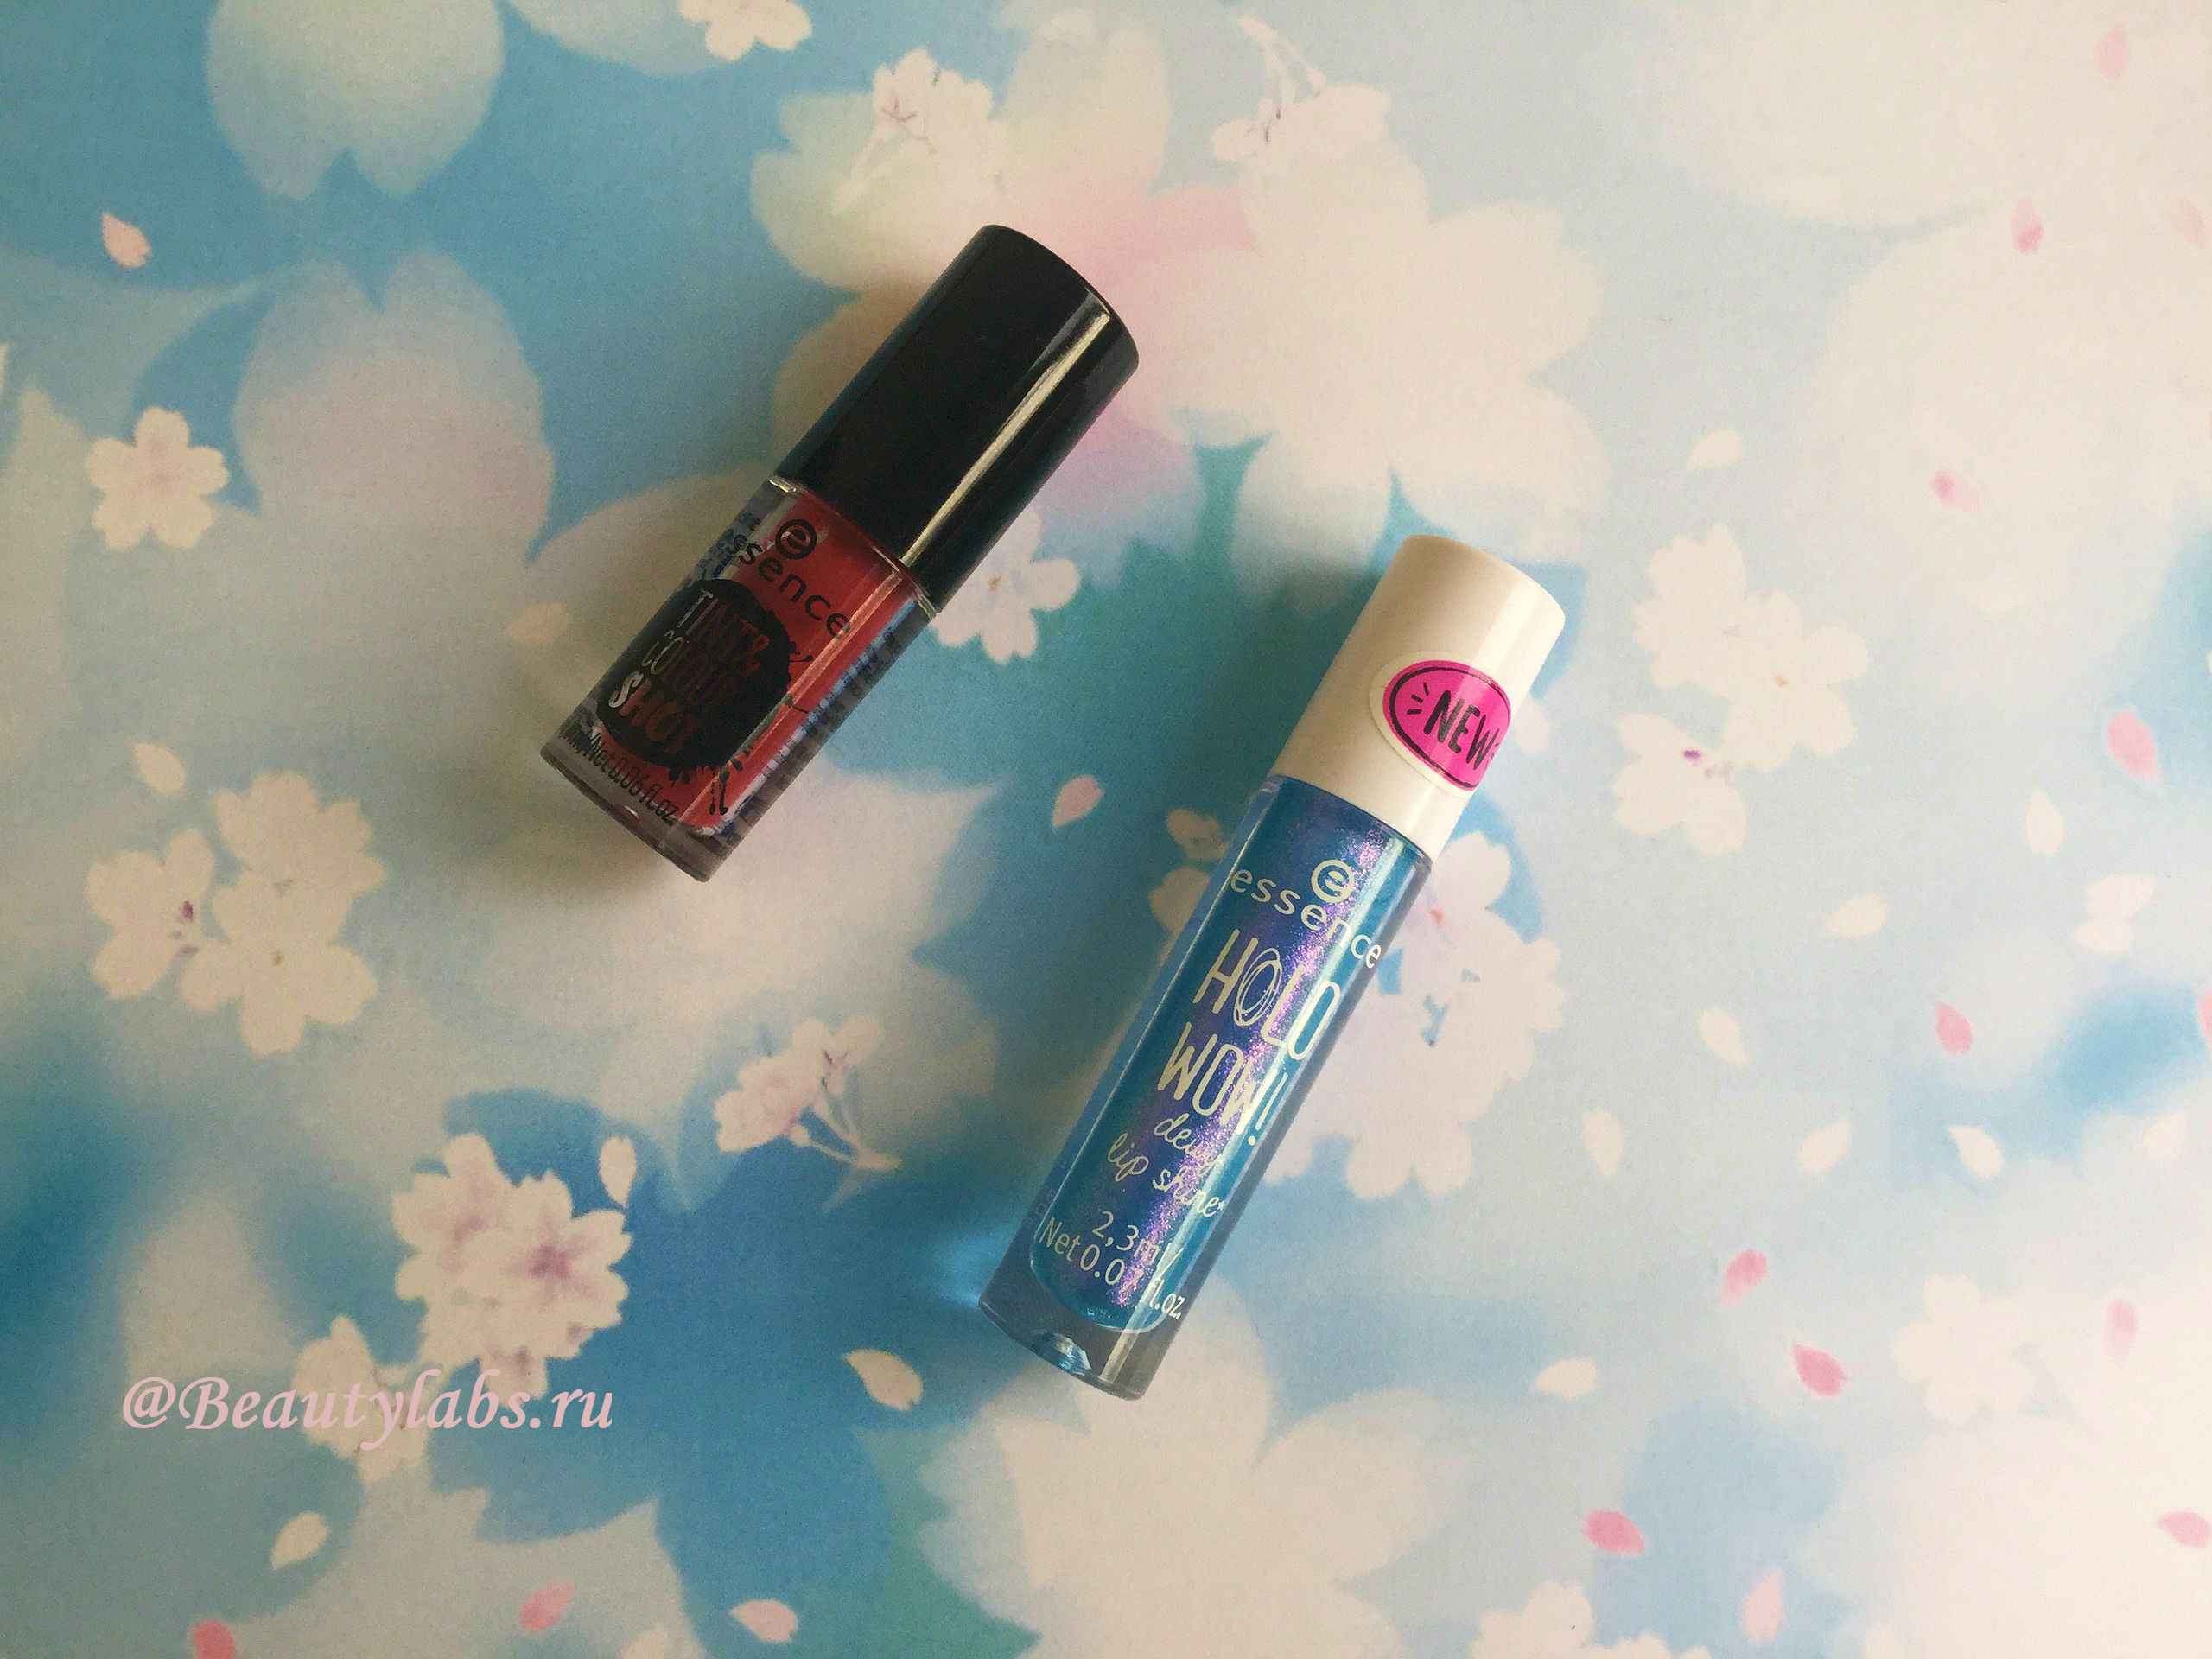 Блеск для губ Essence holo wow! dewy lip shine и тинт для губ Essence tint & colour shot